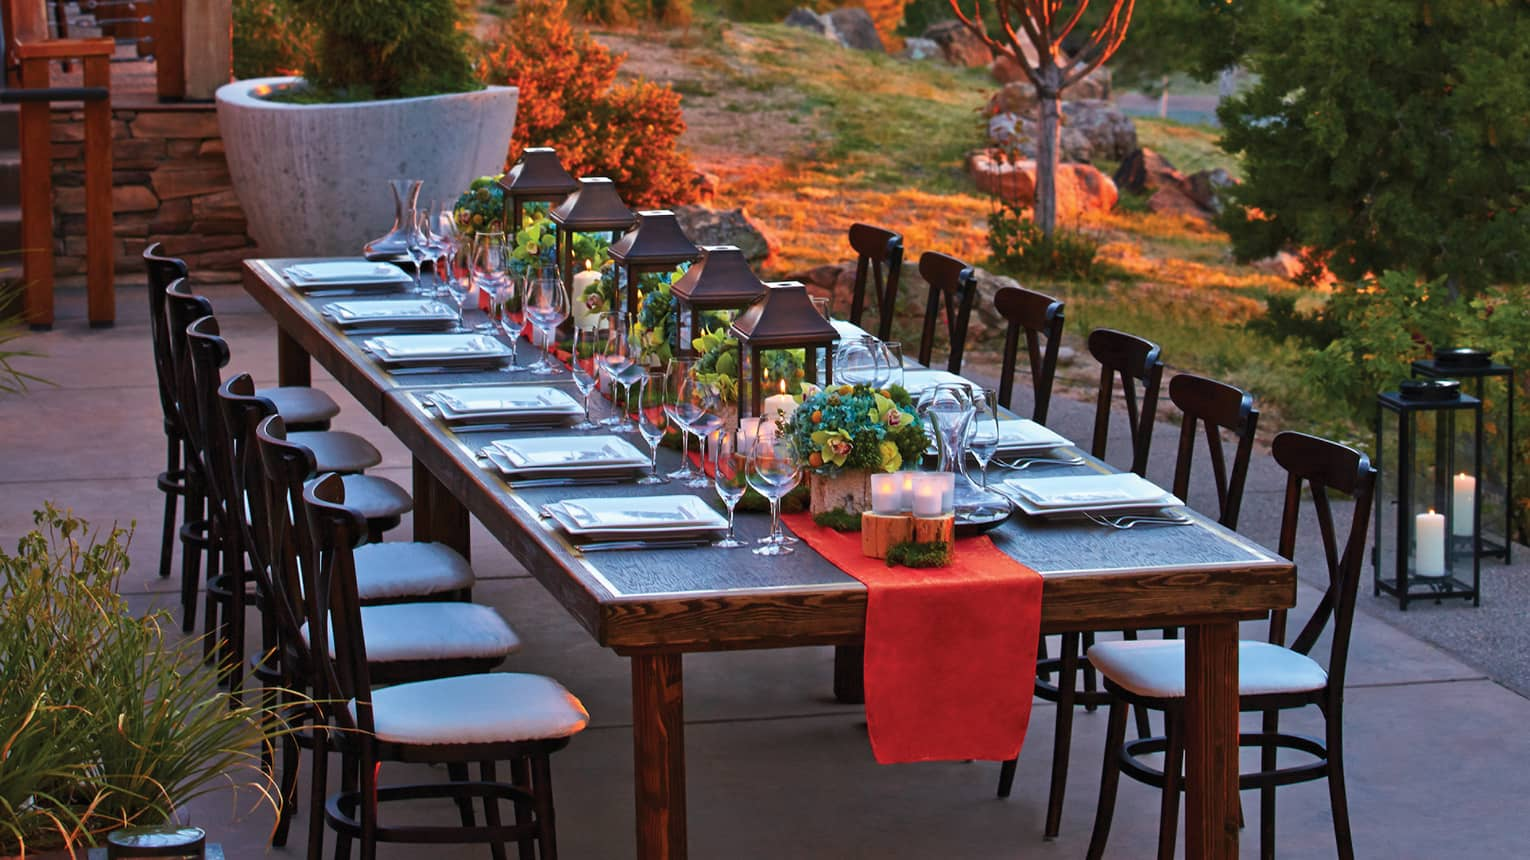 Long wooden table set with red table runner, lanterns, flowers, wine glasses on outdoor terrace at dusk